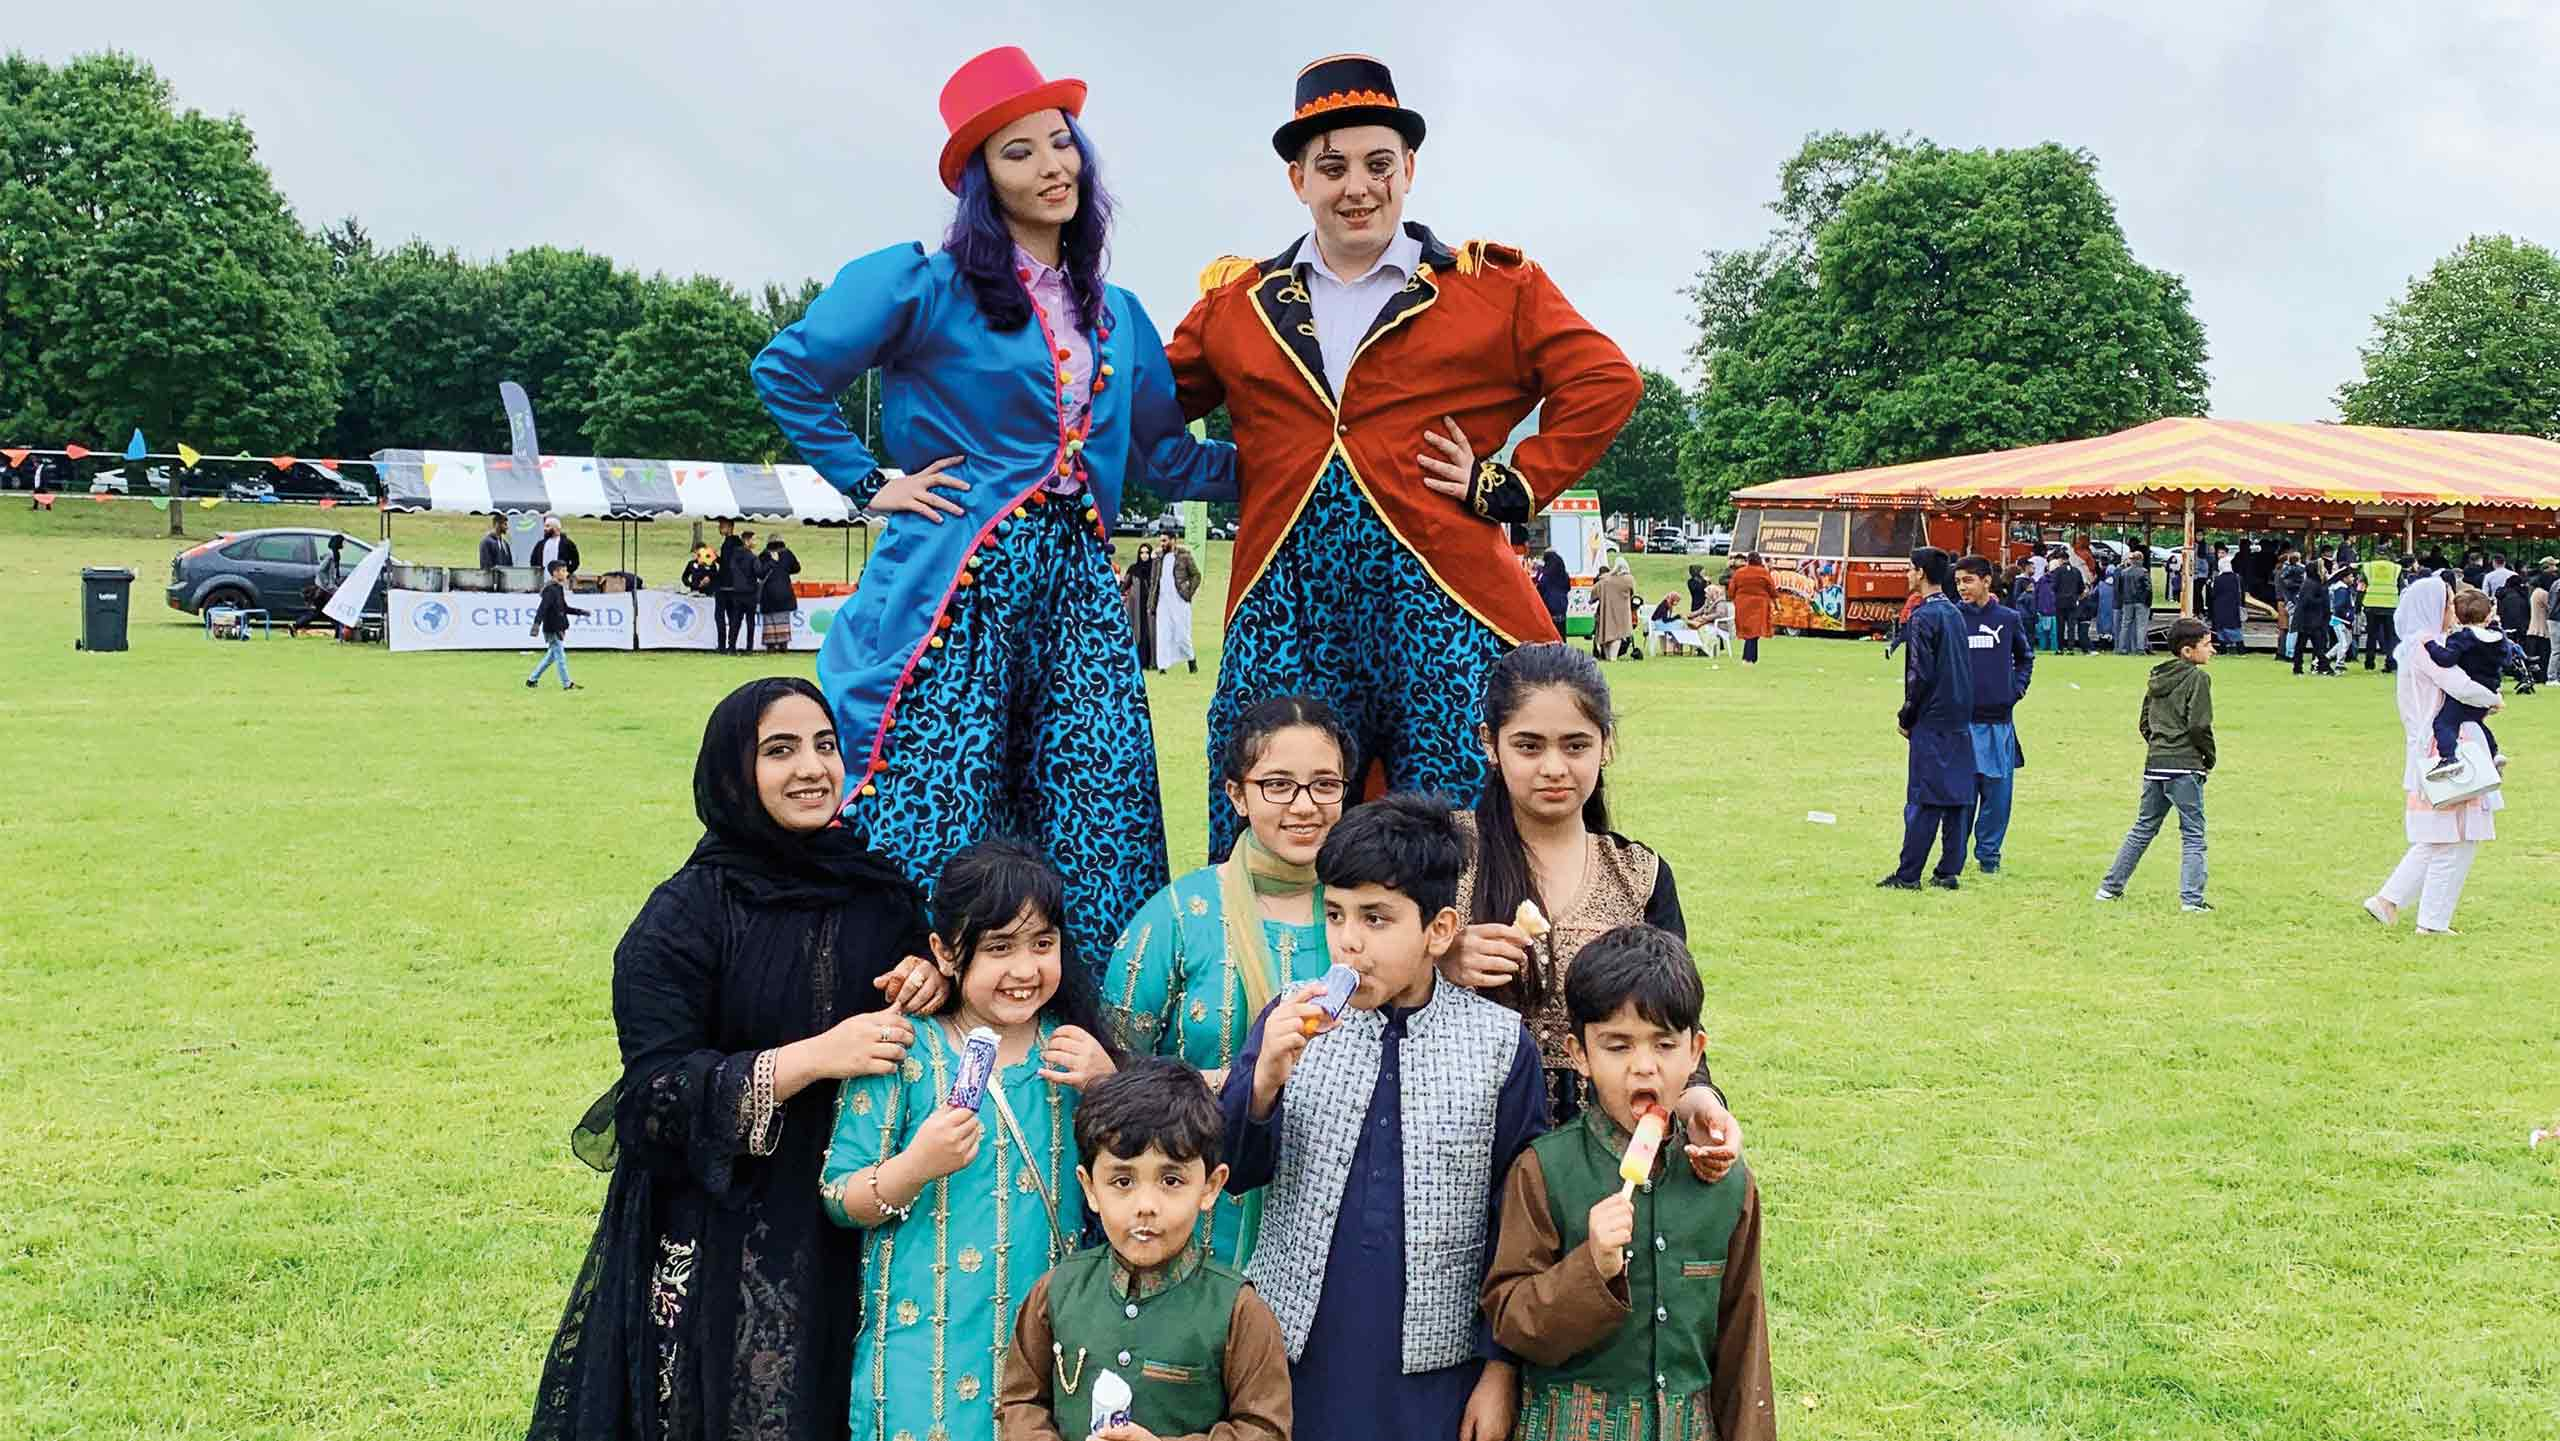 Family photo with two stilt walkers at the Inspire Eid event in Lewsey Park